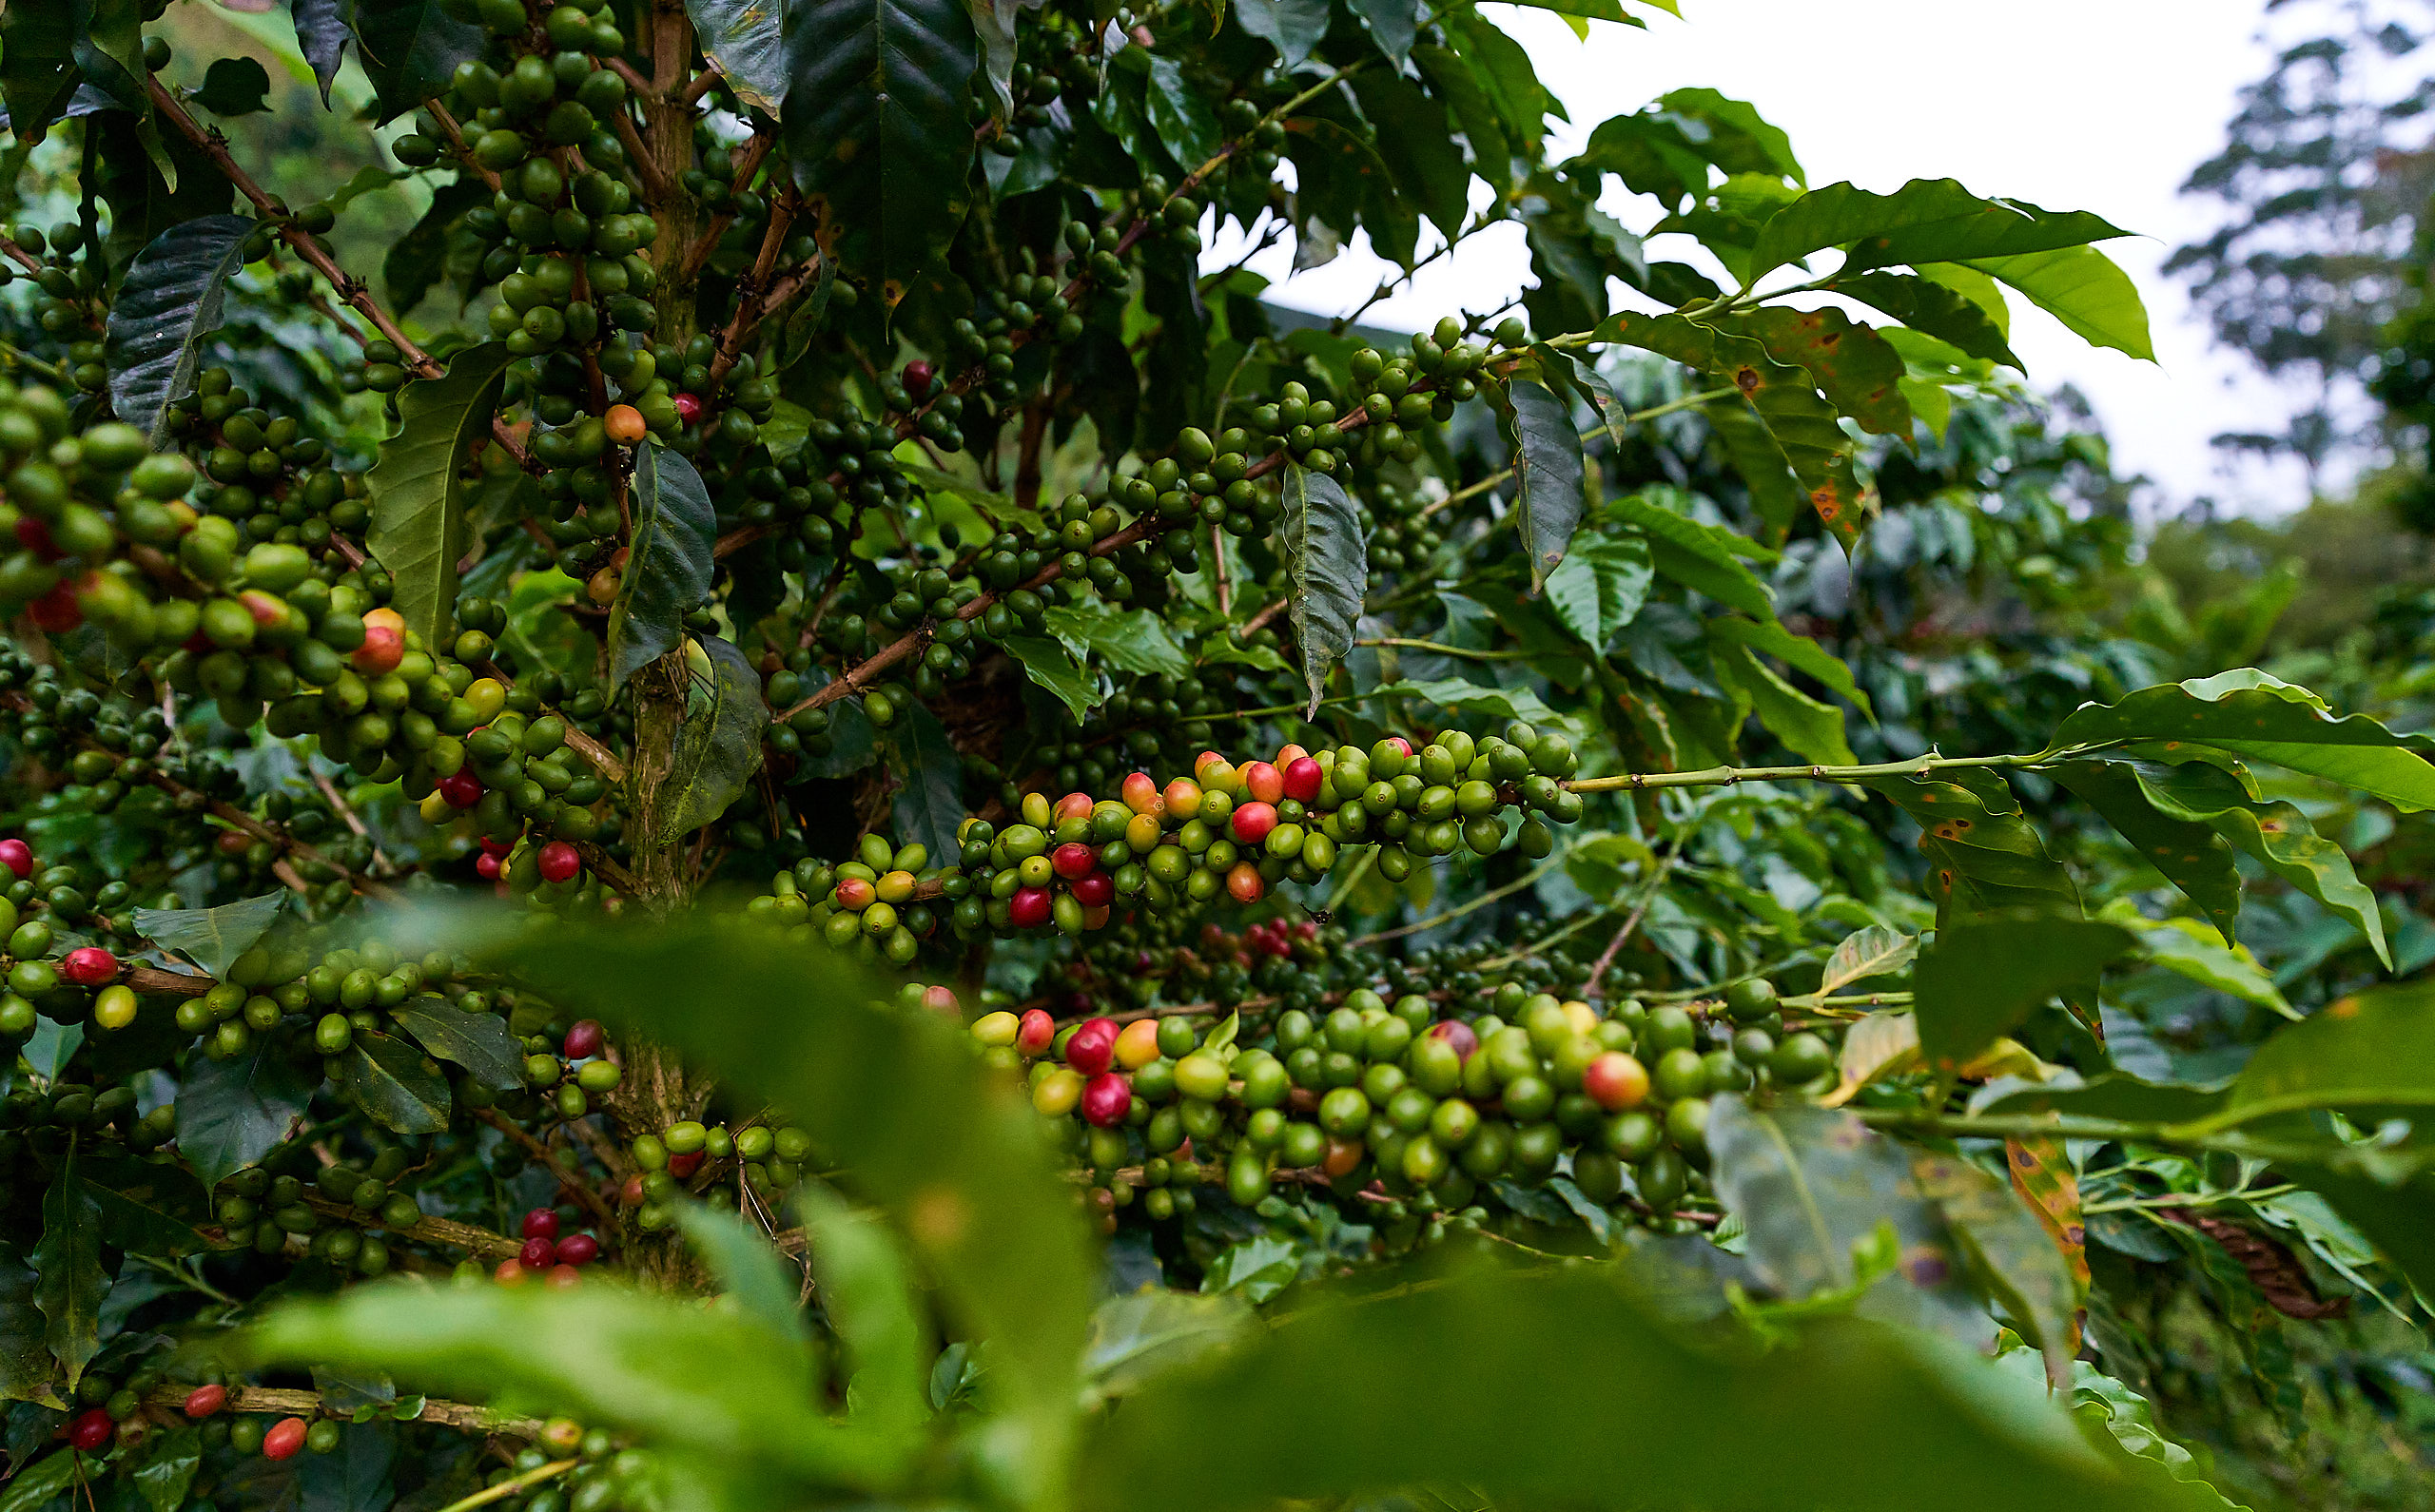 Caturra, Pink Bourbon, Typica and Geisha are some of the varieties grown by the Casallas'